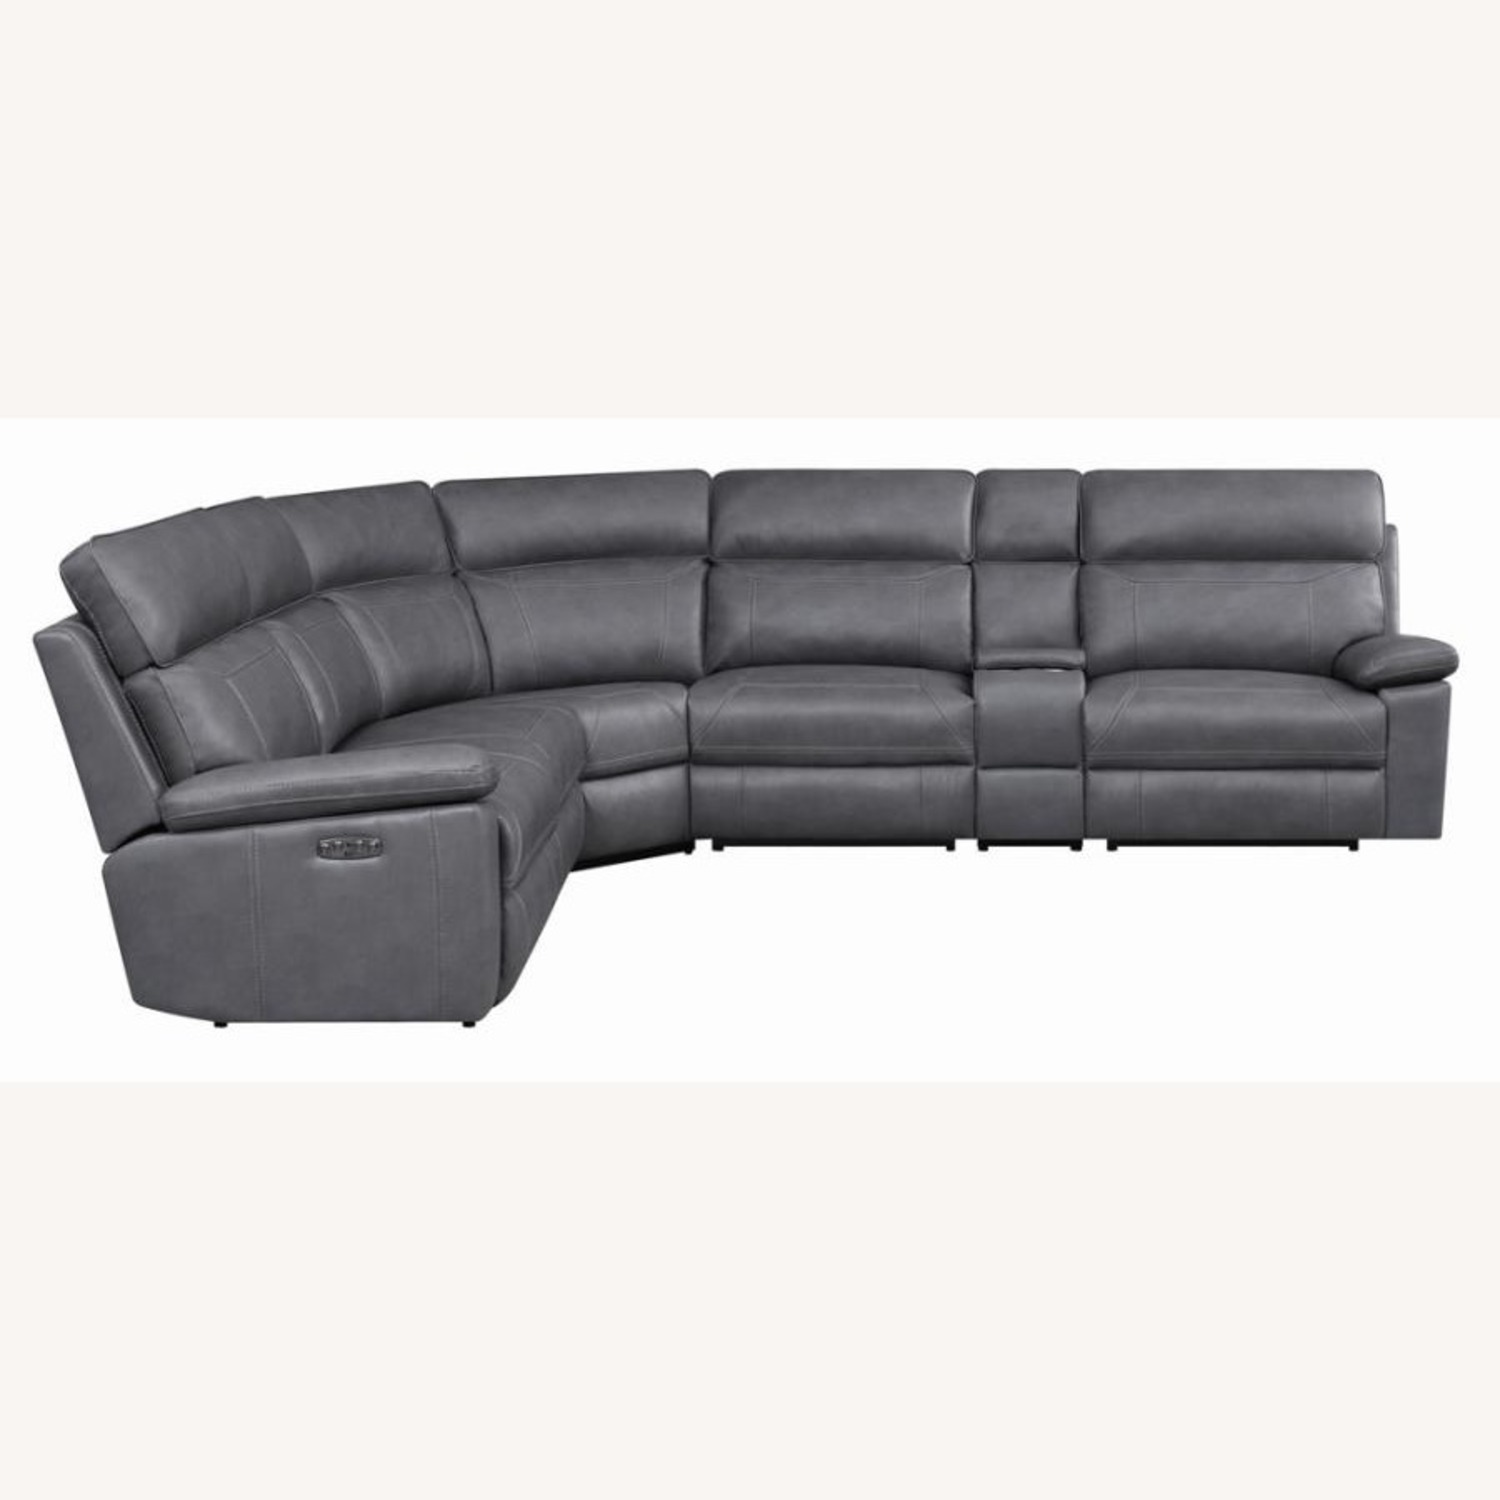 6-Piece Power2 Sectional In Grey Leatherette - image-0